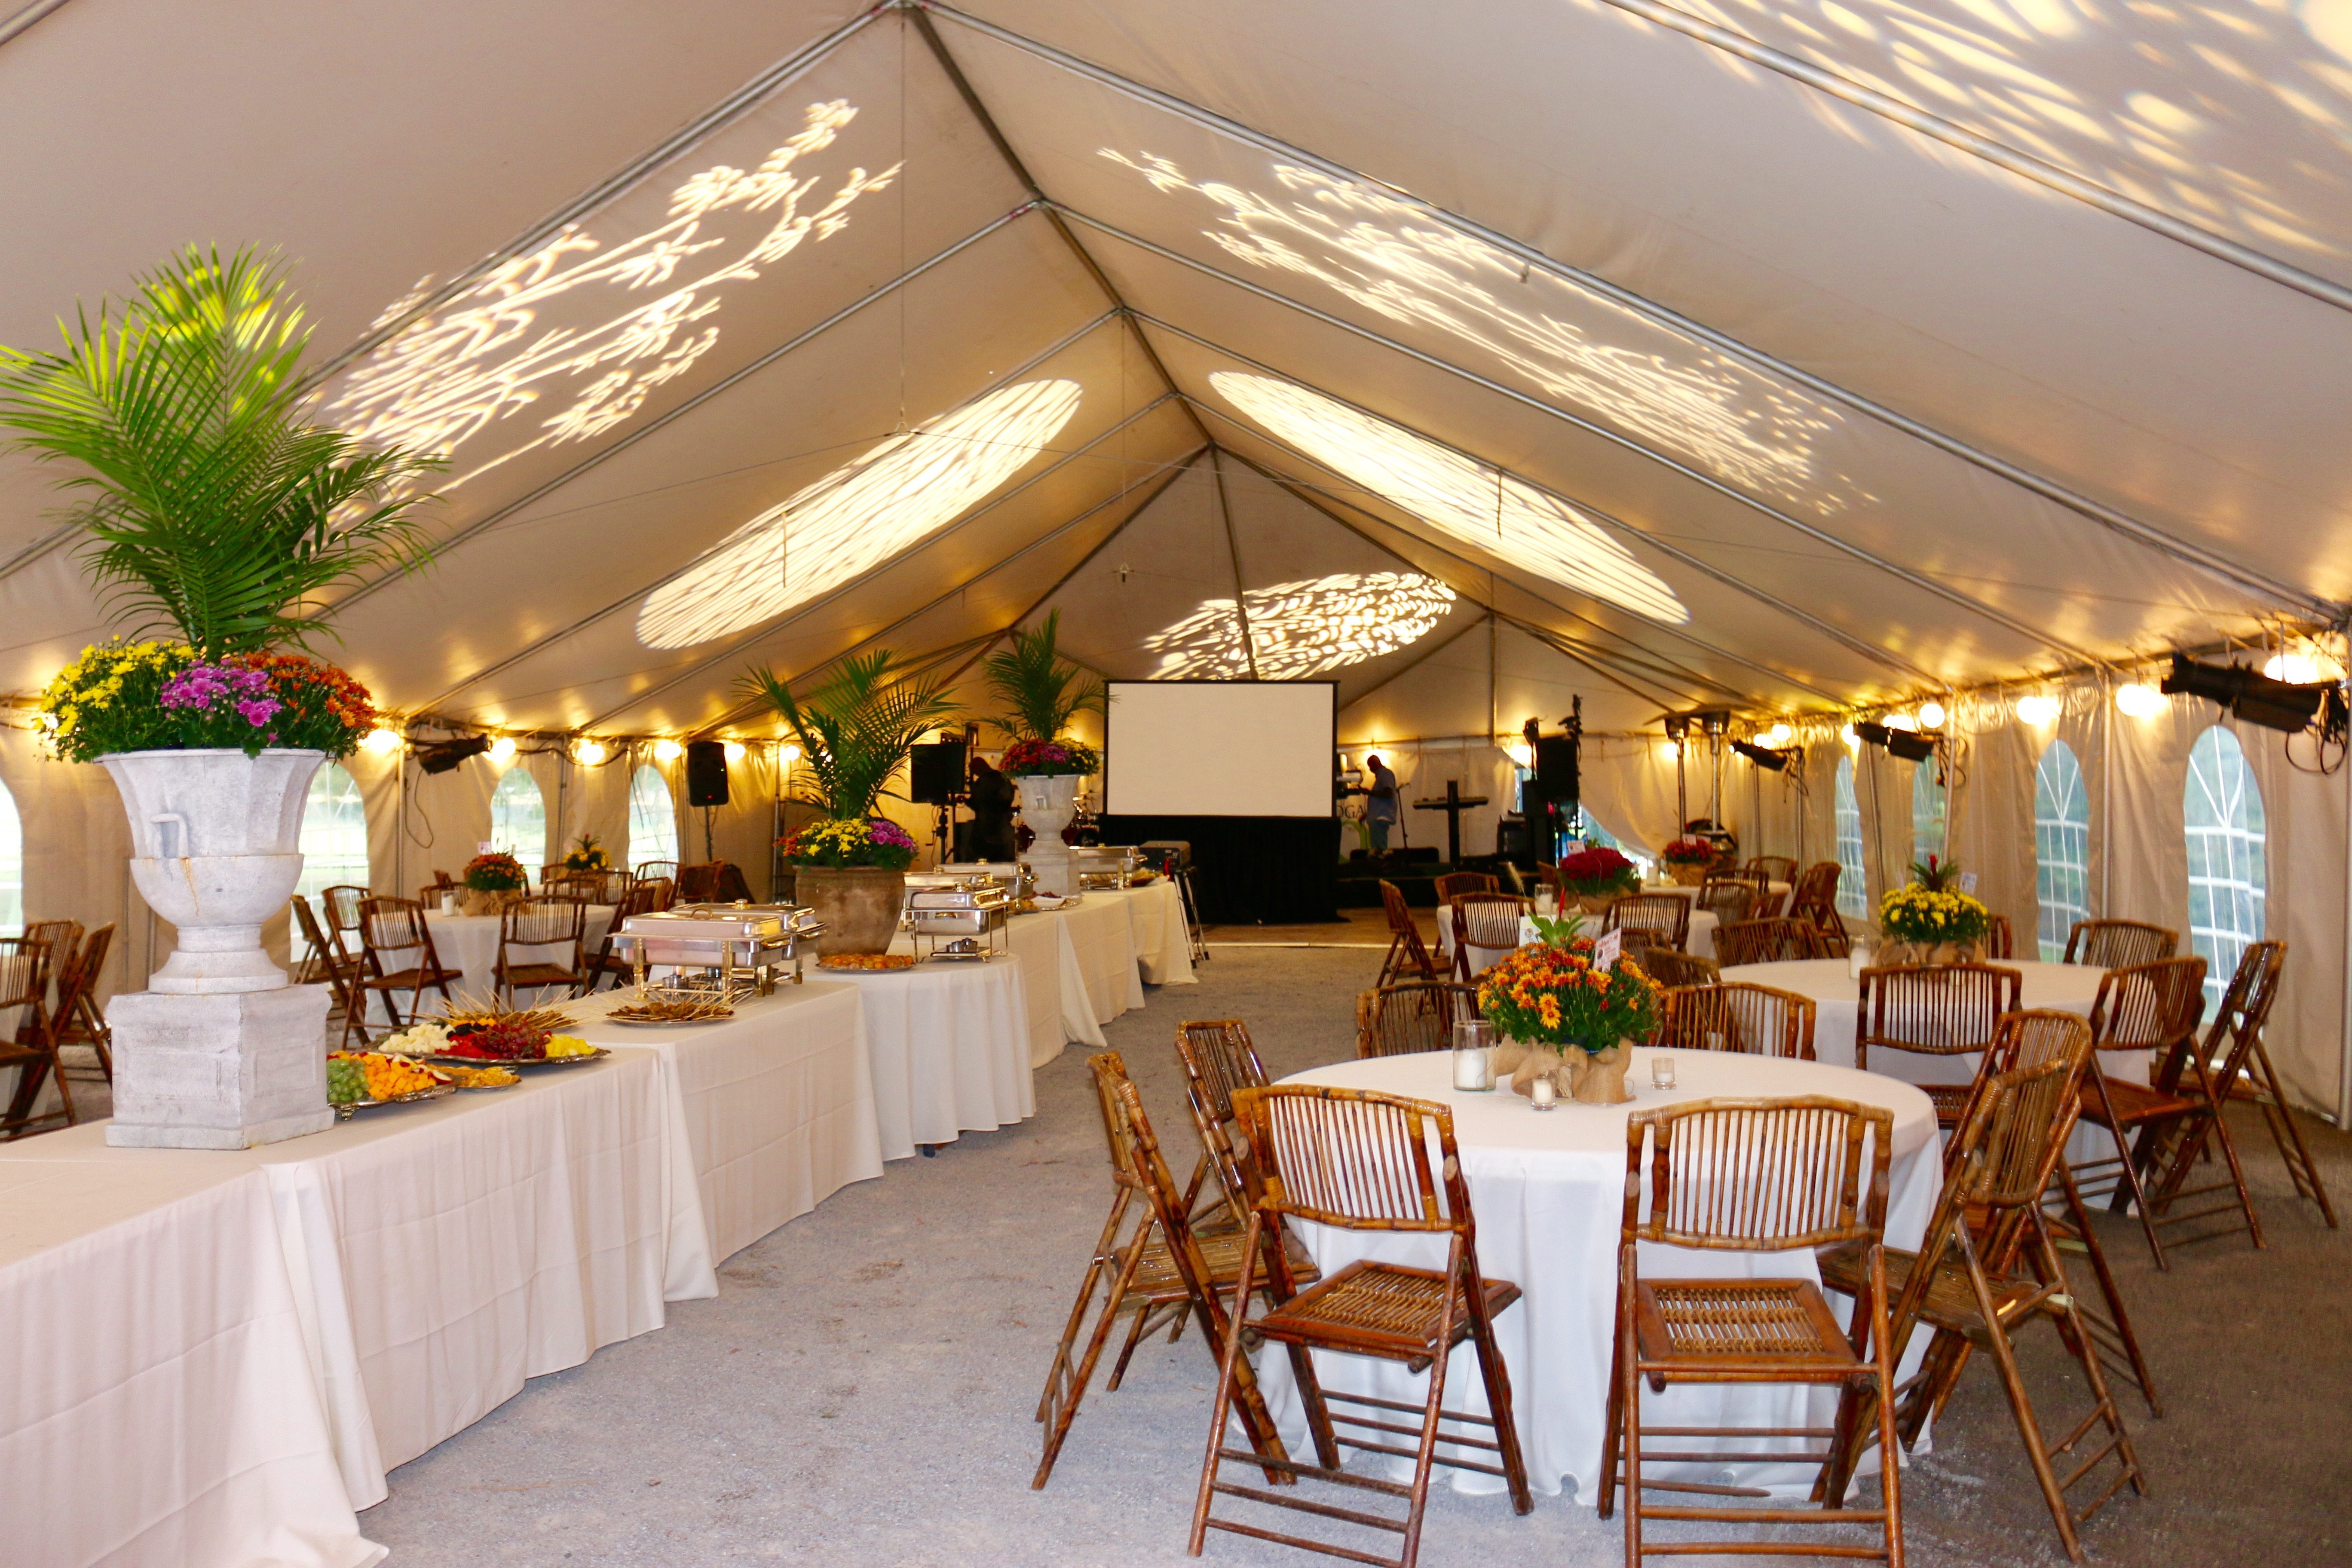 Chattanooga Zoo Venue Chattanooga Get Your Price Estimate